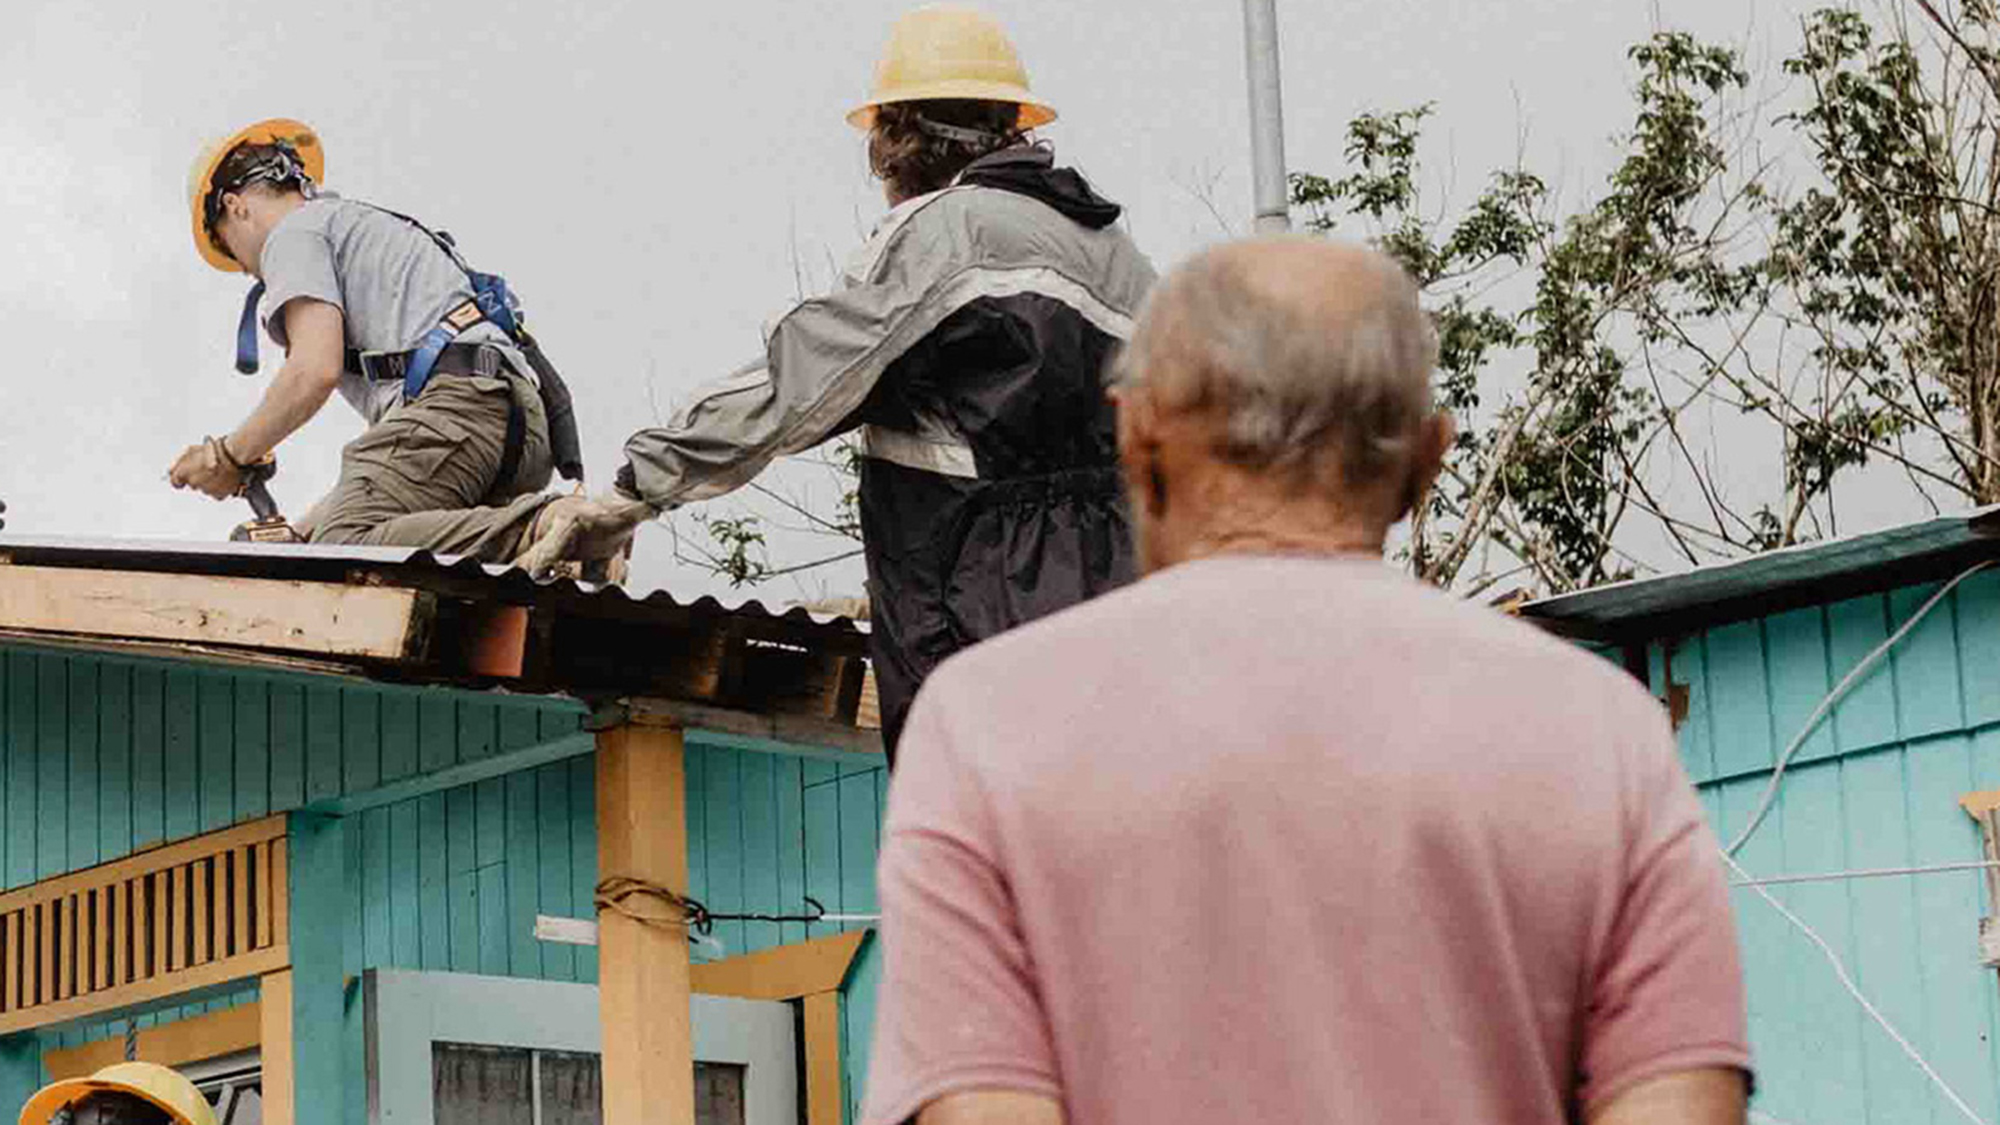 People working on a roof